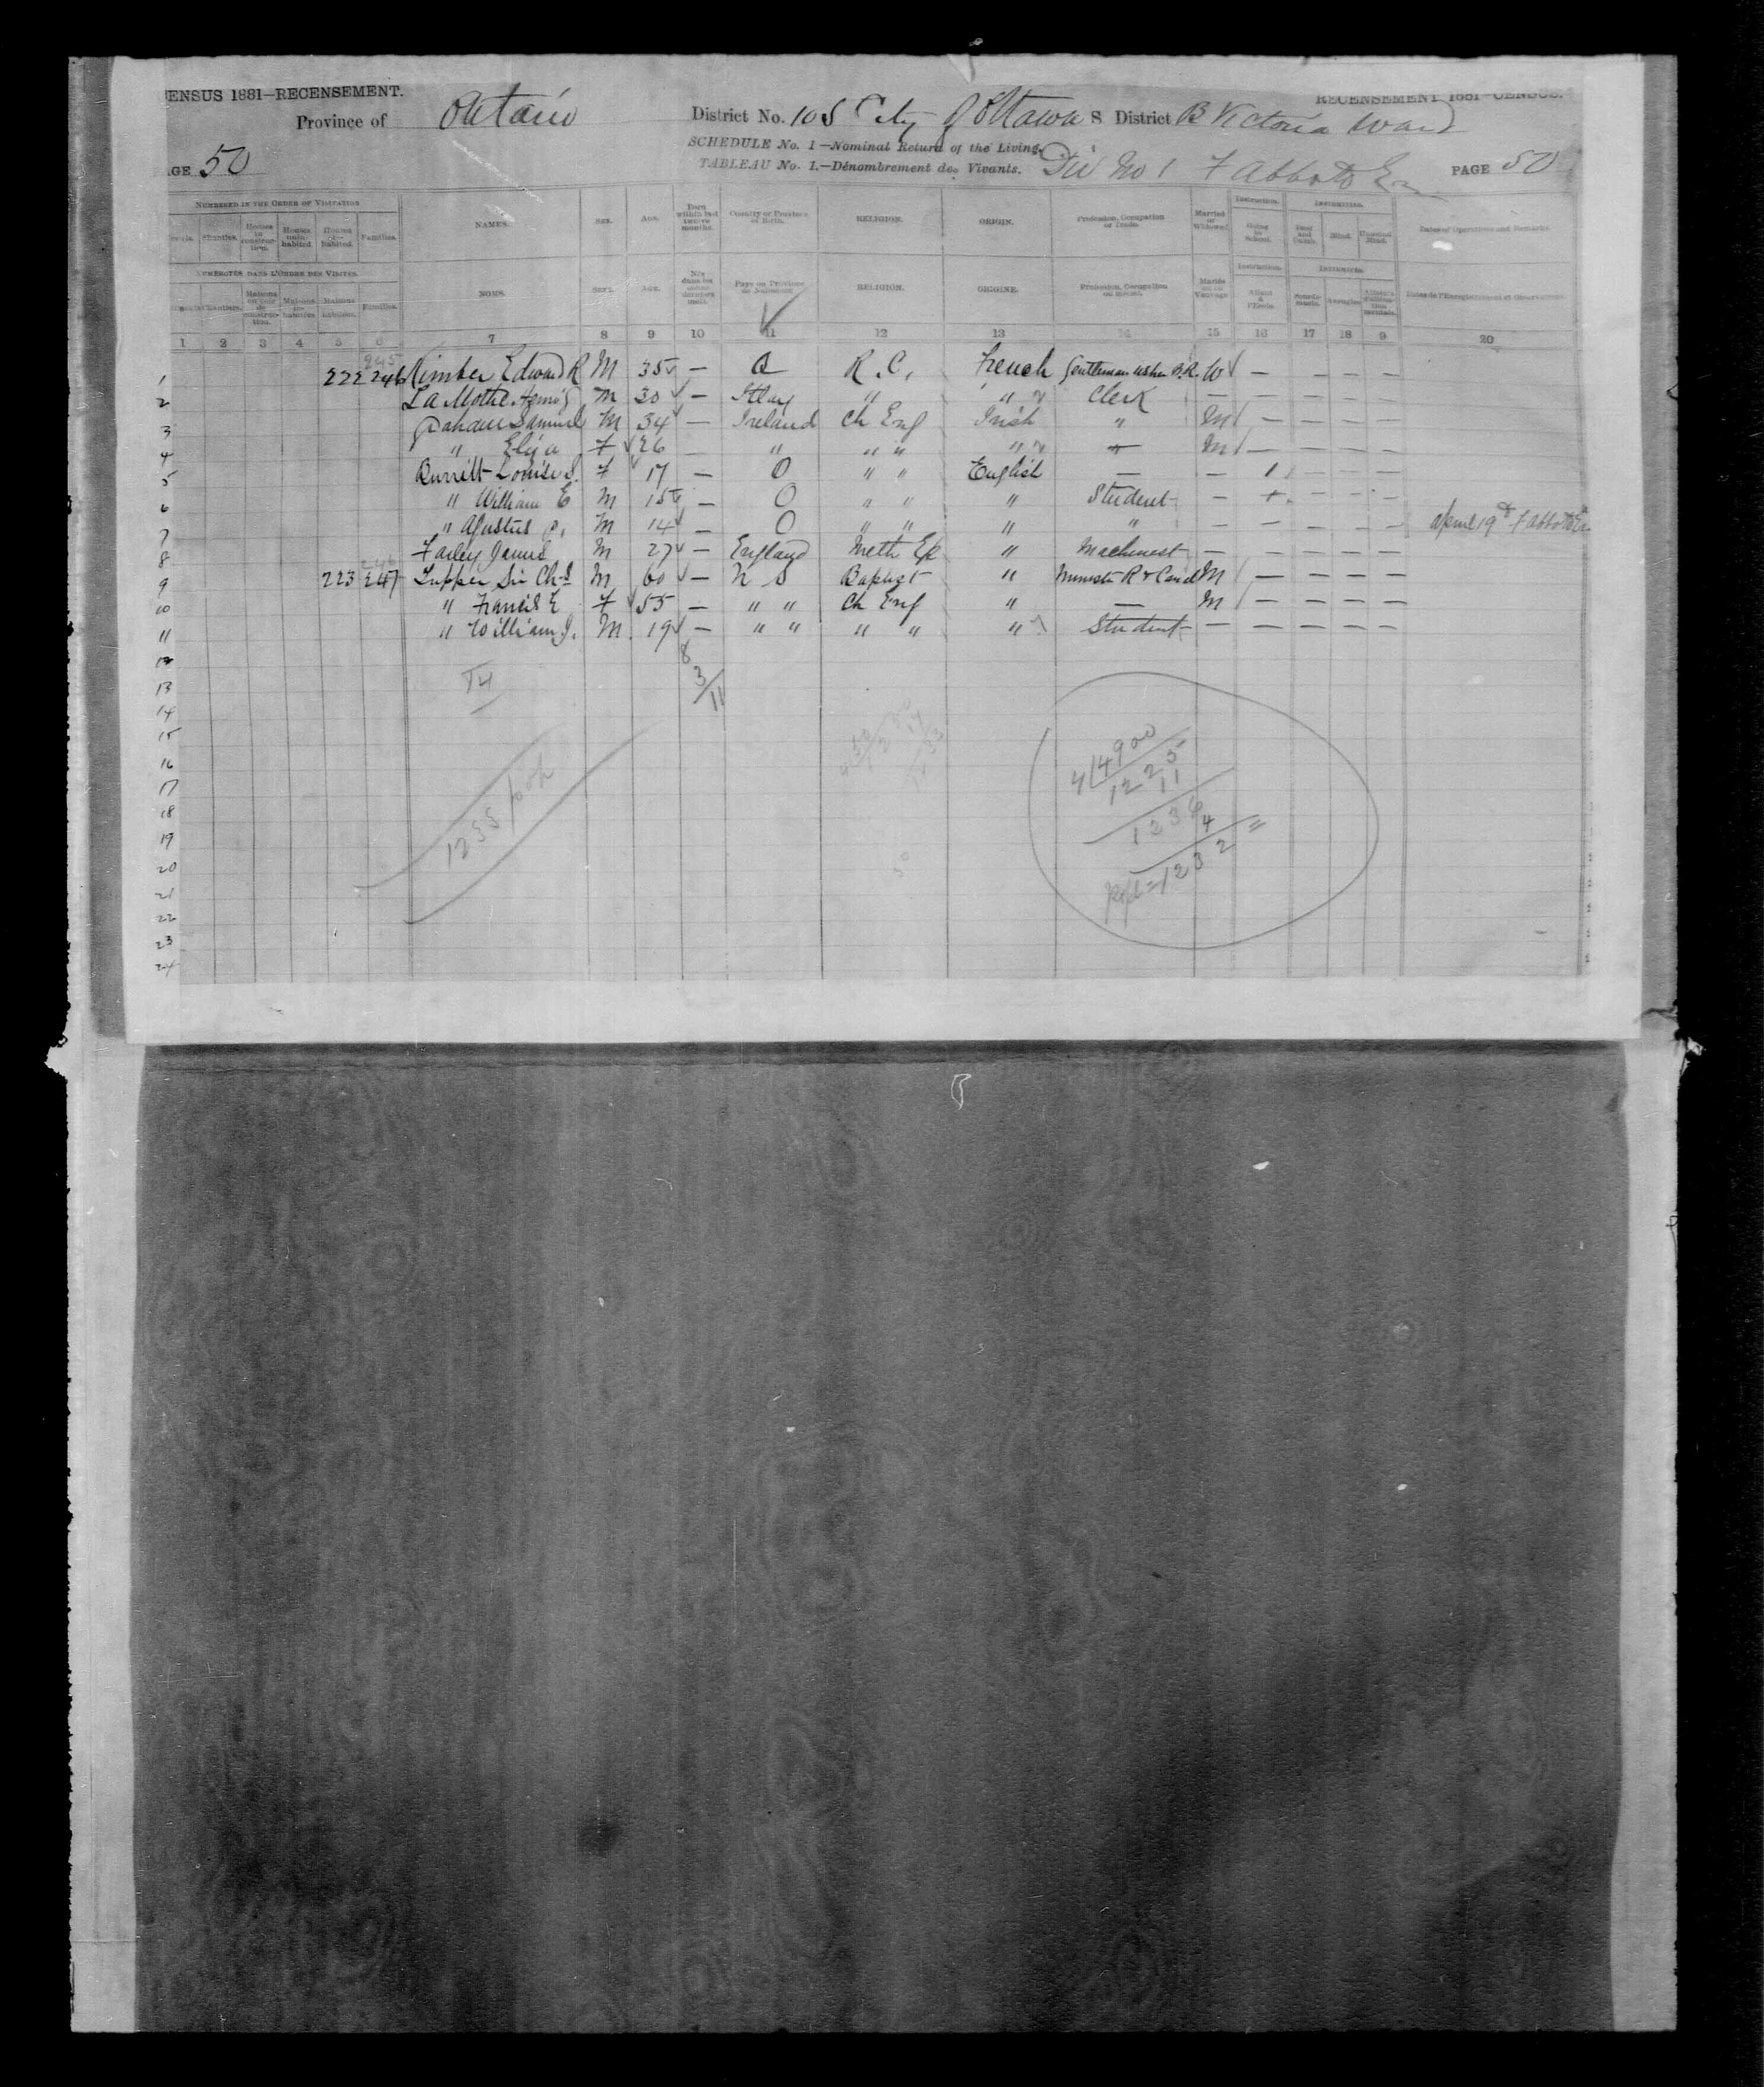 Digitized page of Census of Canada, 1881, Page number 50, for Sir Chs. TUPPER